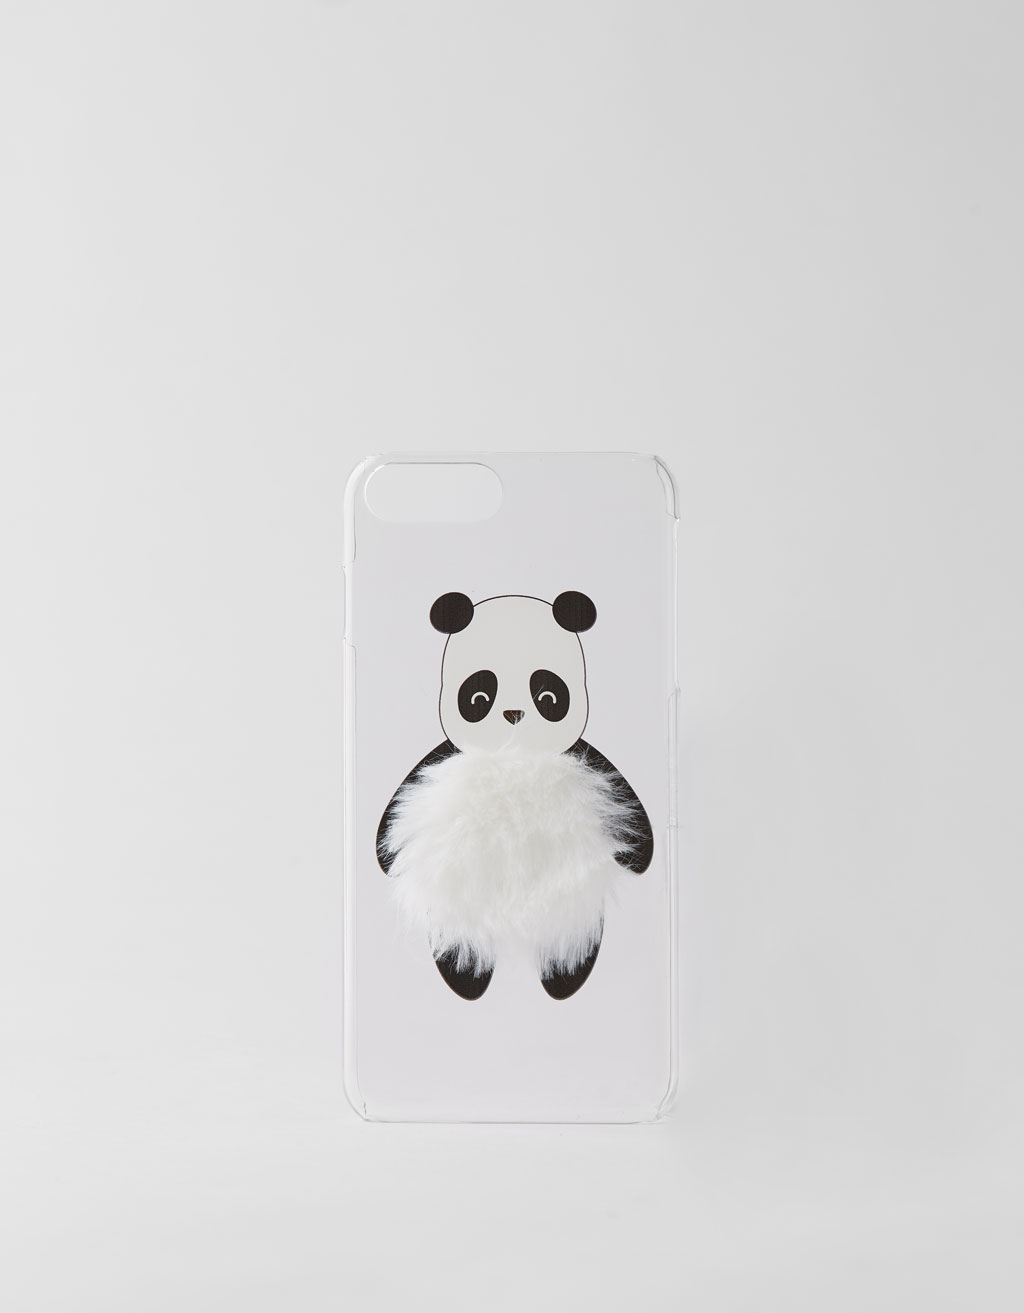 Carcassa panda iPhone 6 plus / 7 plus / 8 plus